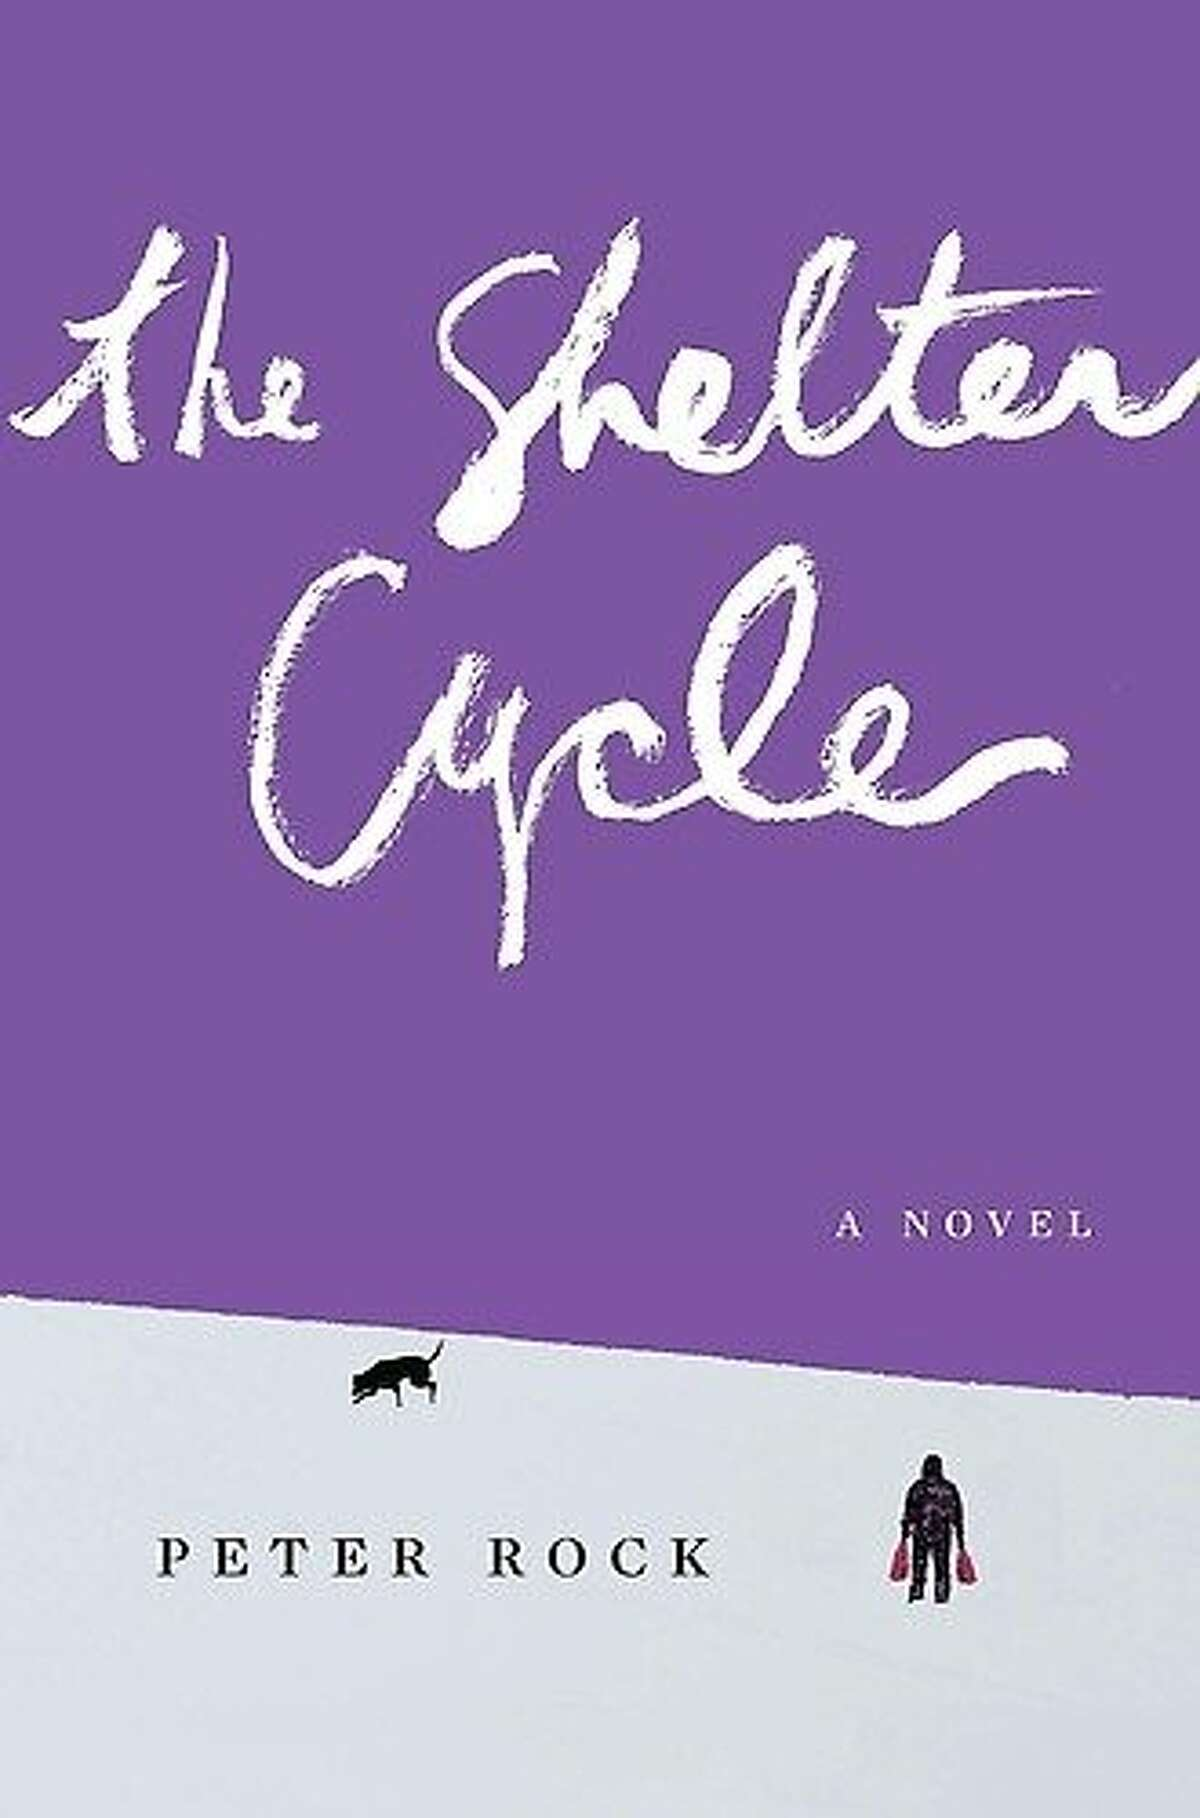 The Shelter Cycle, by Peter Rock